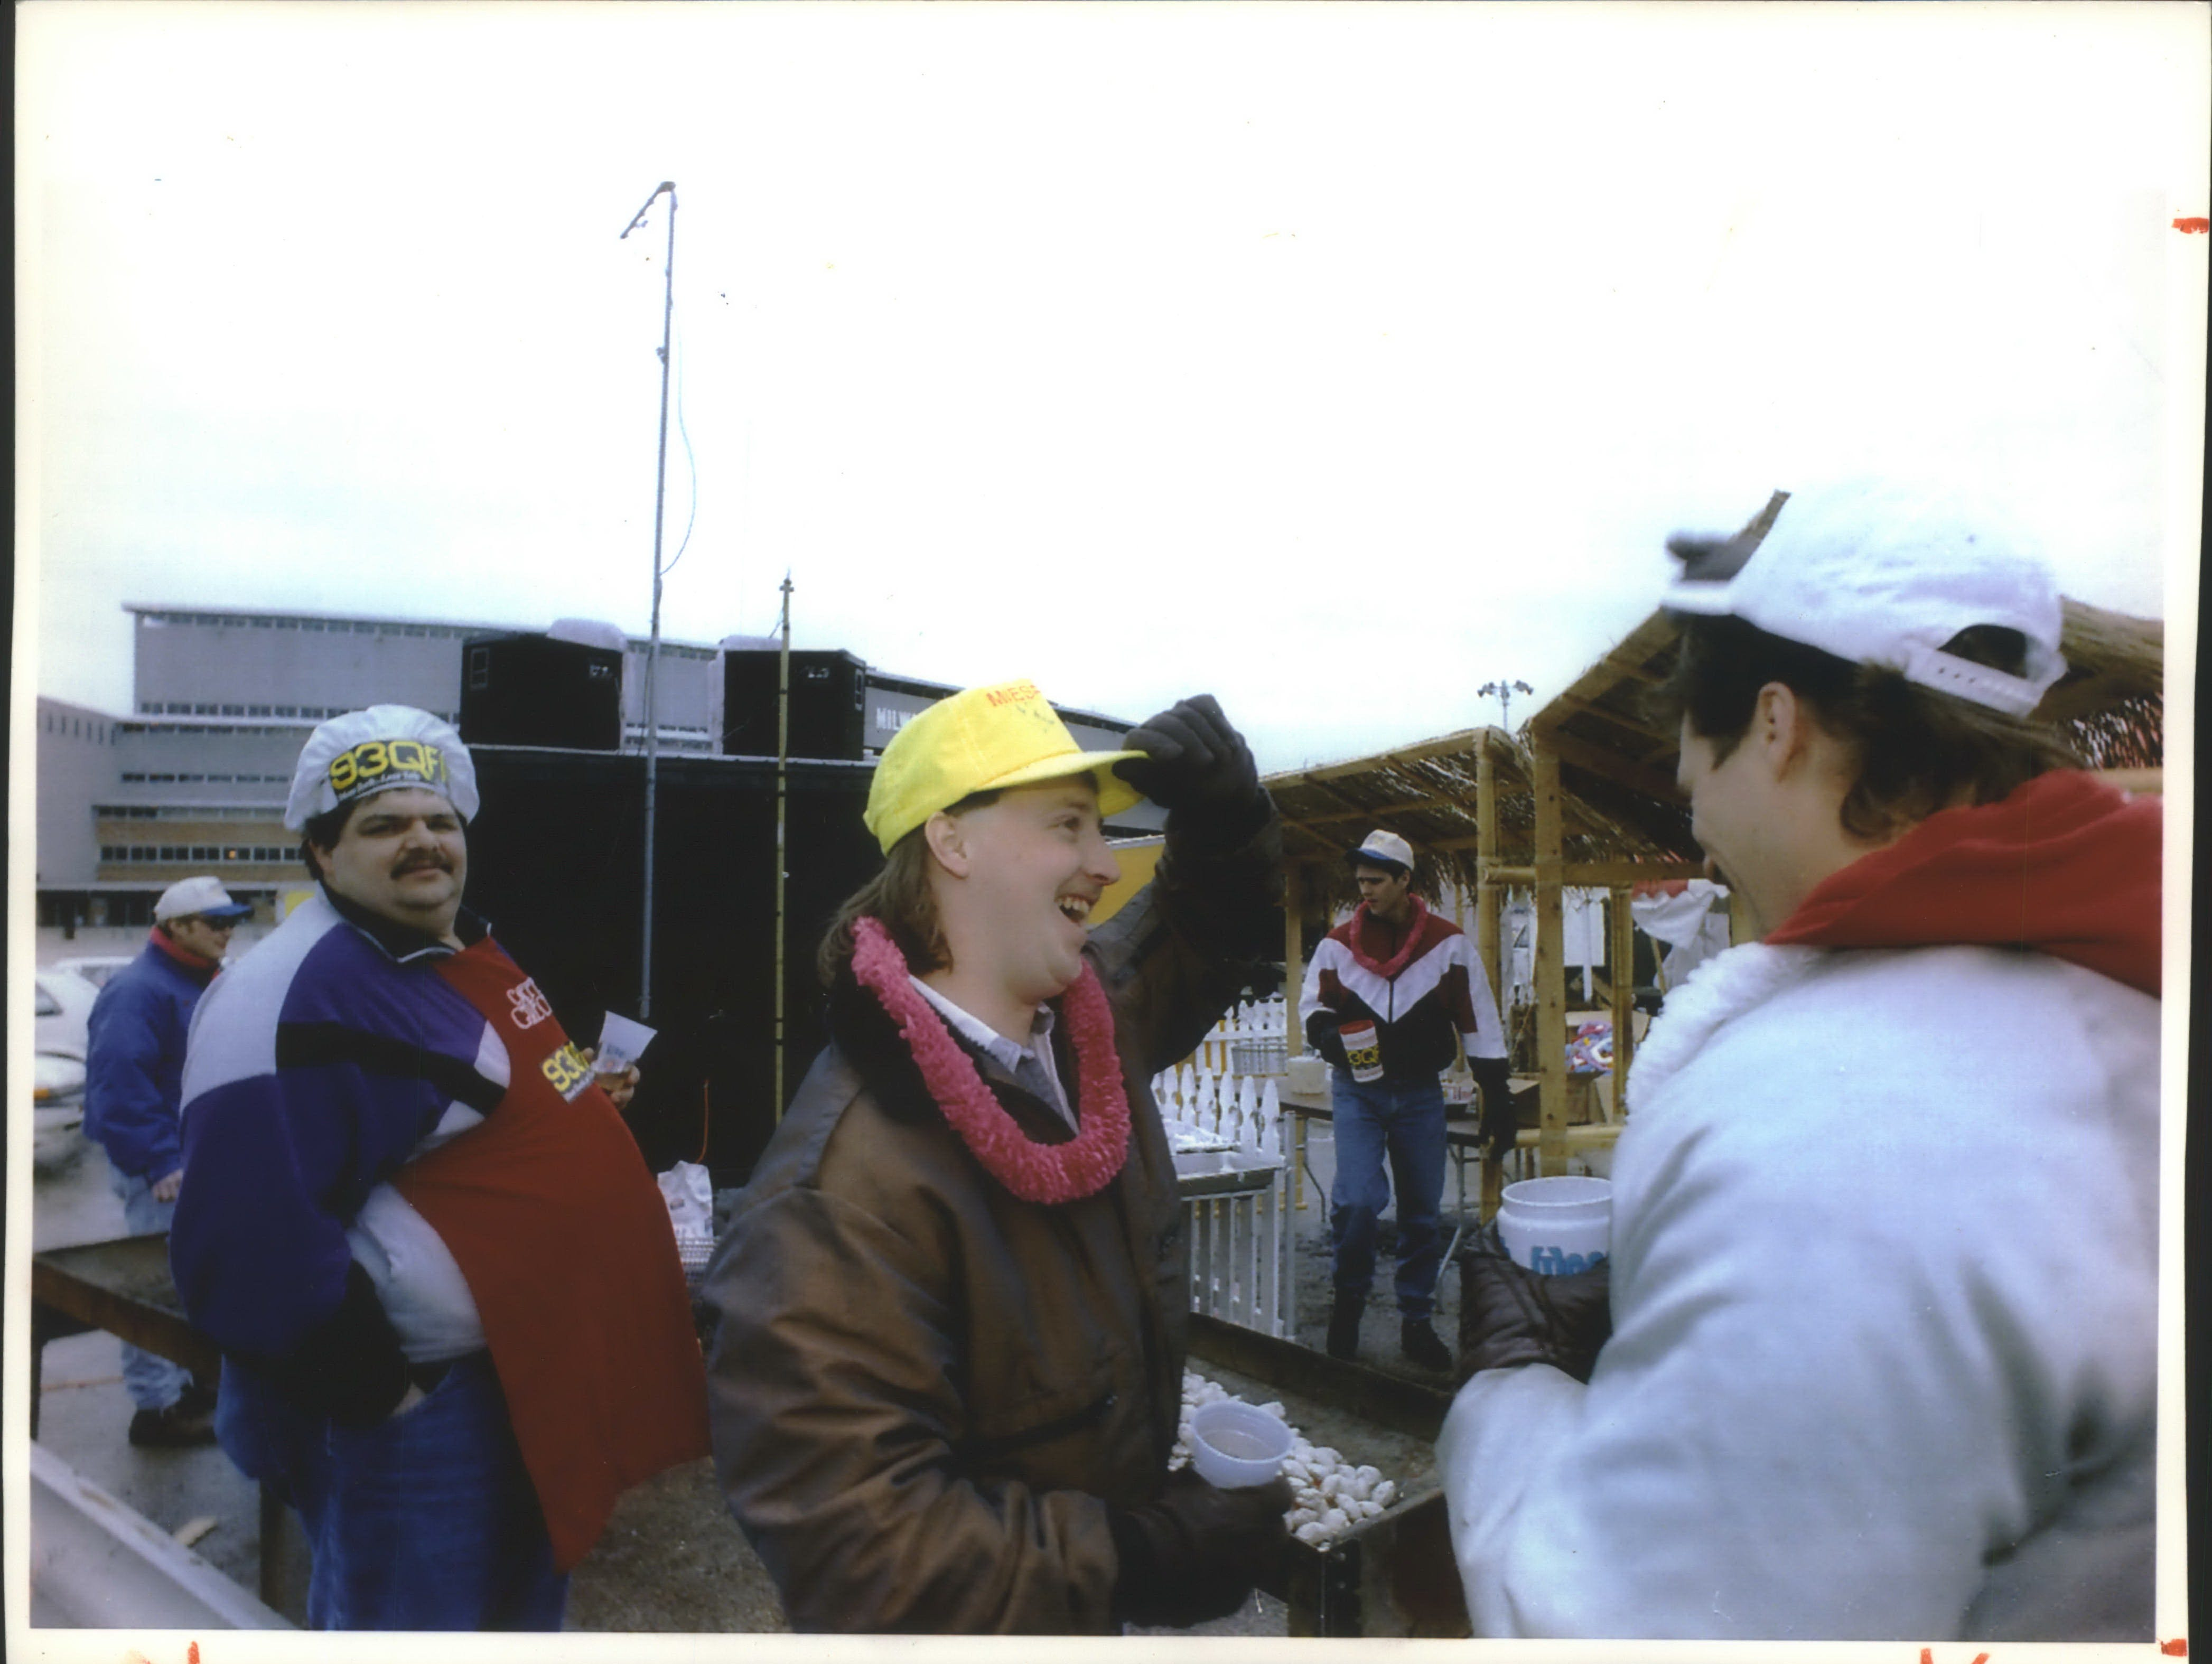 Gearing up for the start of the Milwaukee Brewers' 1993 home opener against the California Angels, Thomas Greco (from left) , Tracy Messner, John Morrill and Chuck Miesfeld get WQFM-FM's tailgate party under way at County Stadium on April 12, 1993. (The Brewers lost, 12-5.)